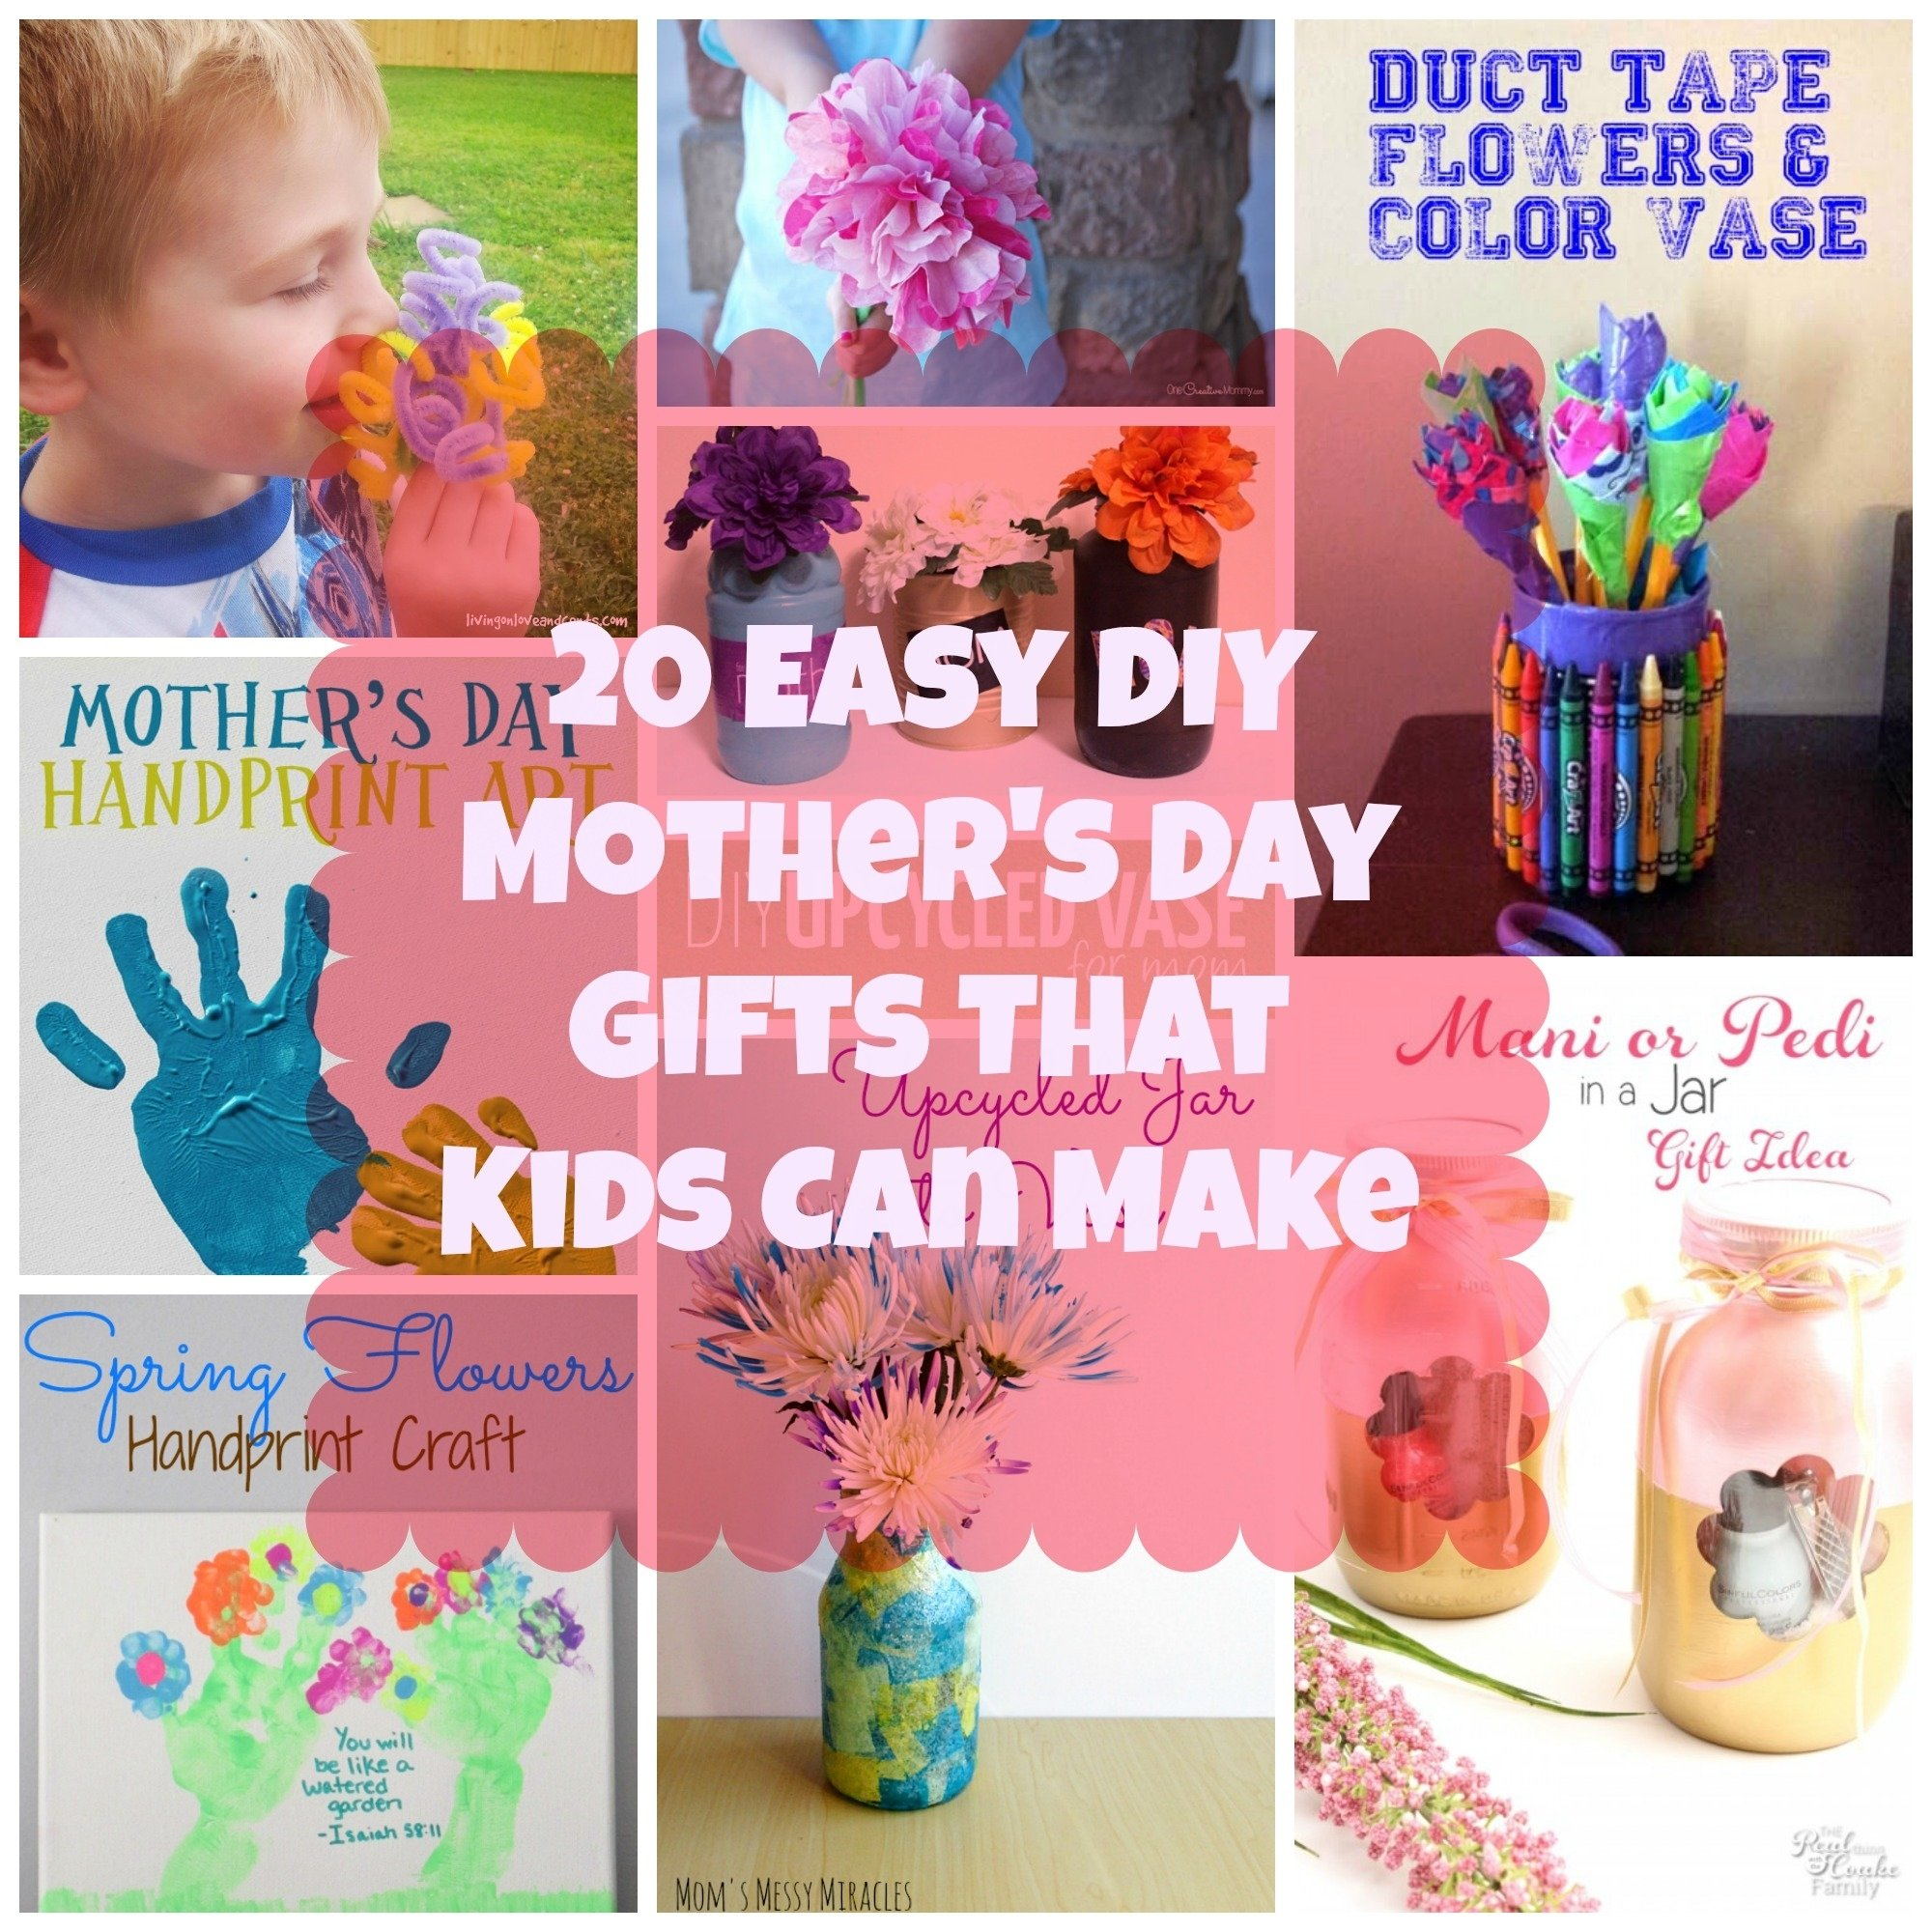 20 easy diy mother's day gifts that kids can make